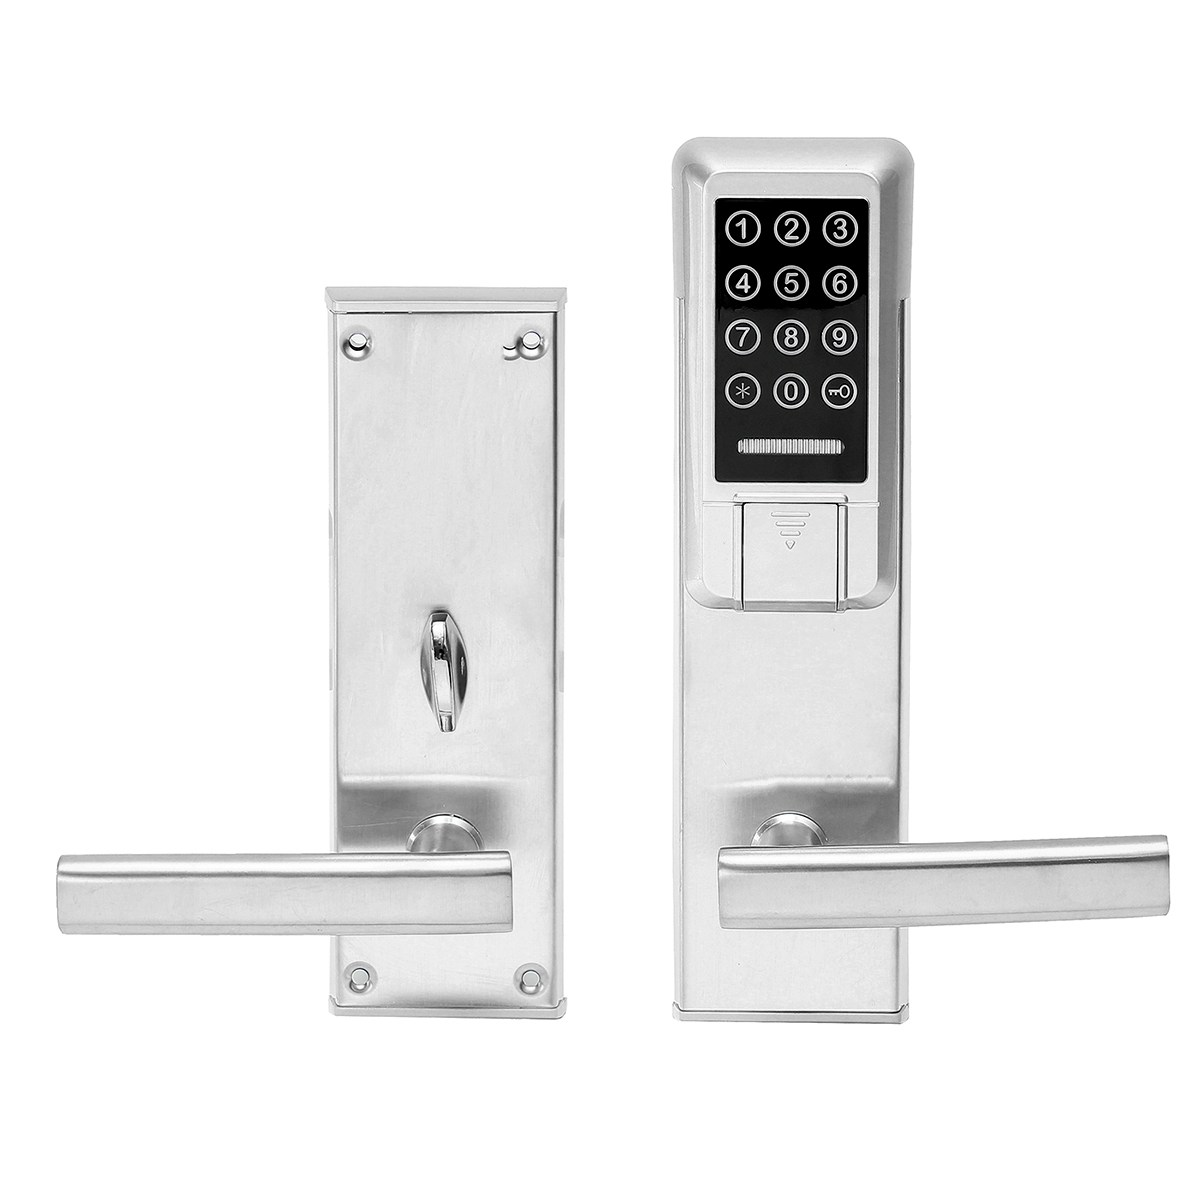 Safurance Electronic Digital Smart Password Door Lock Keypad Touch